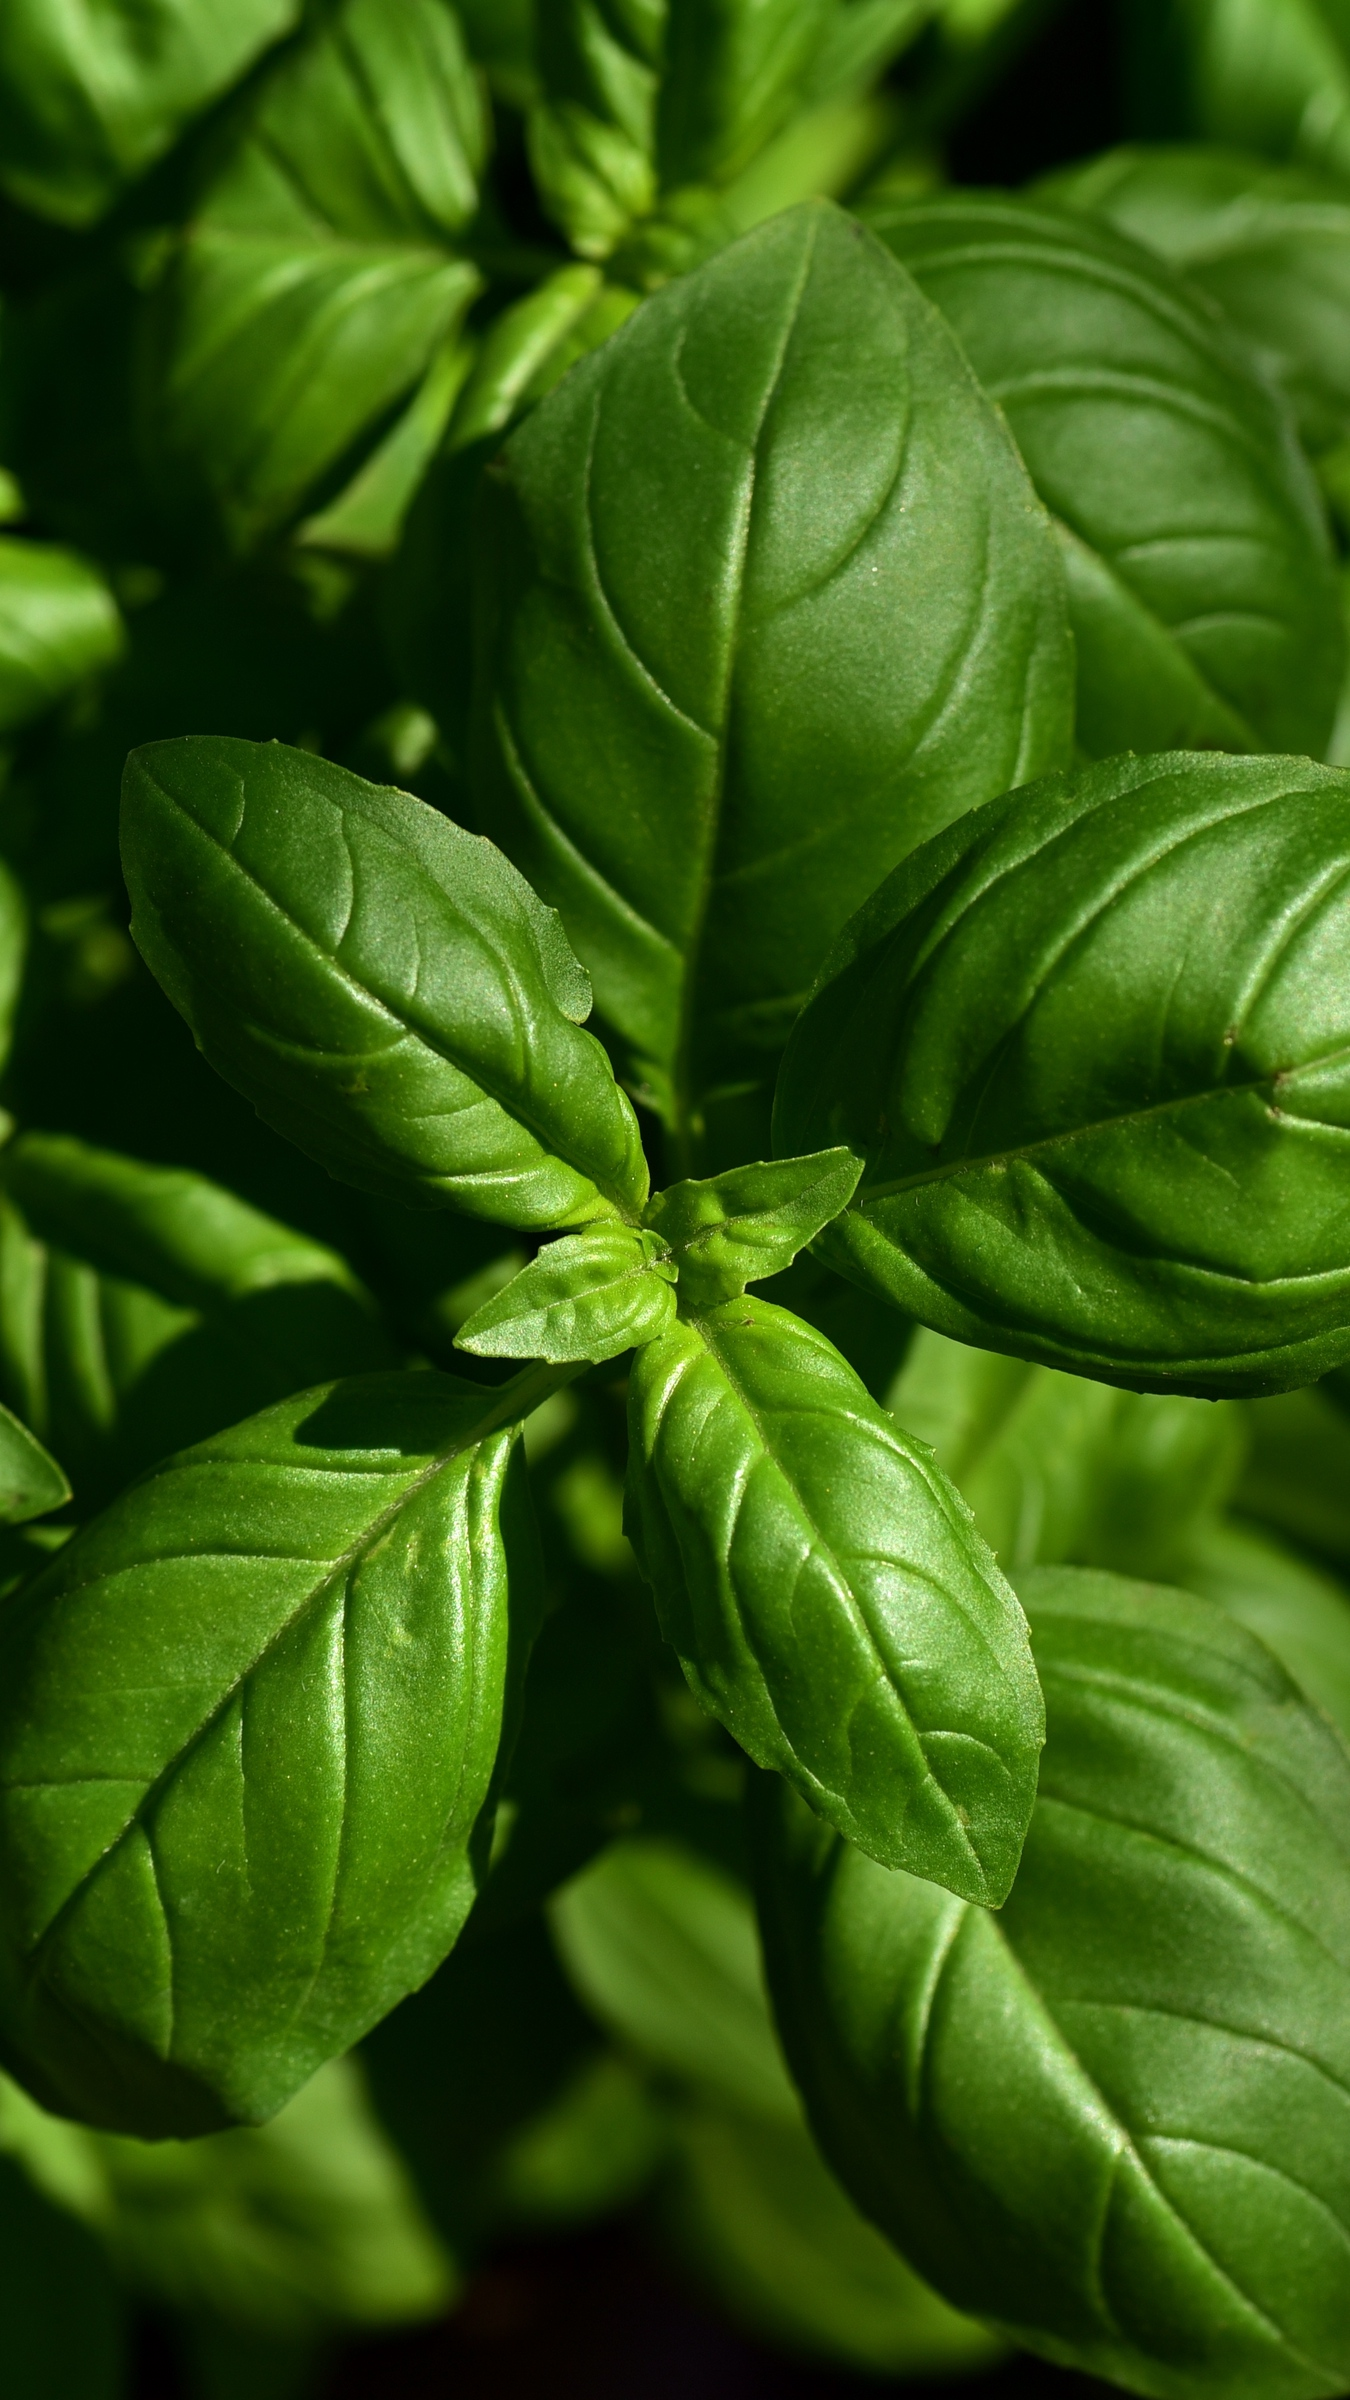 Download wallpaper 1350x2400 basil leaves green plant iphone 8 1350x2400